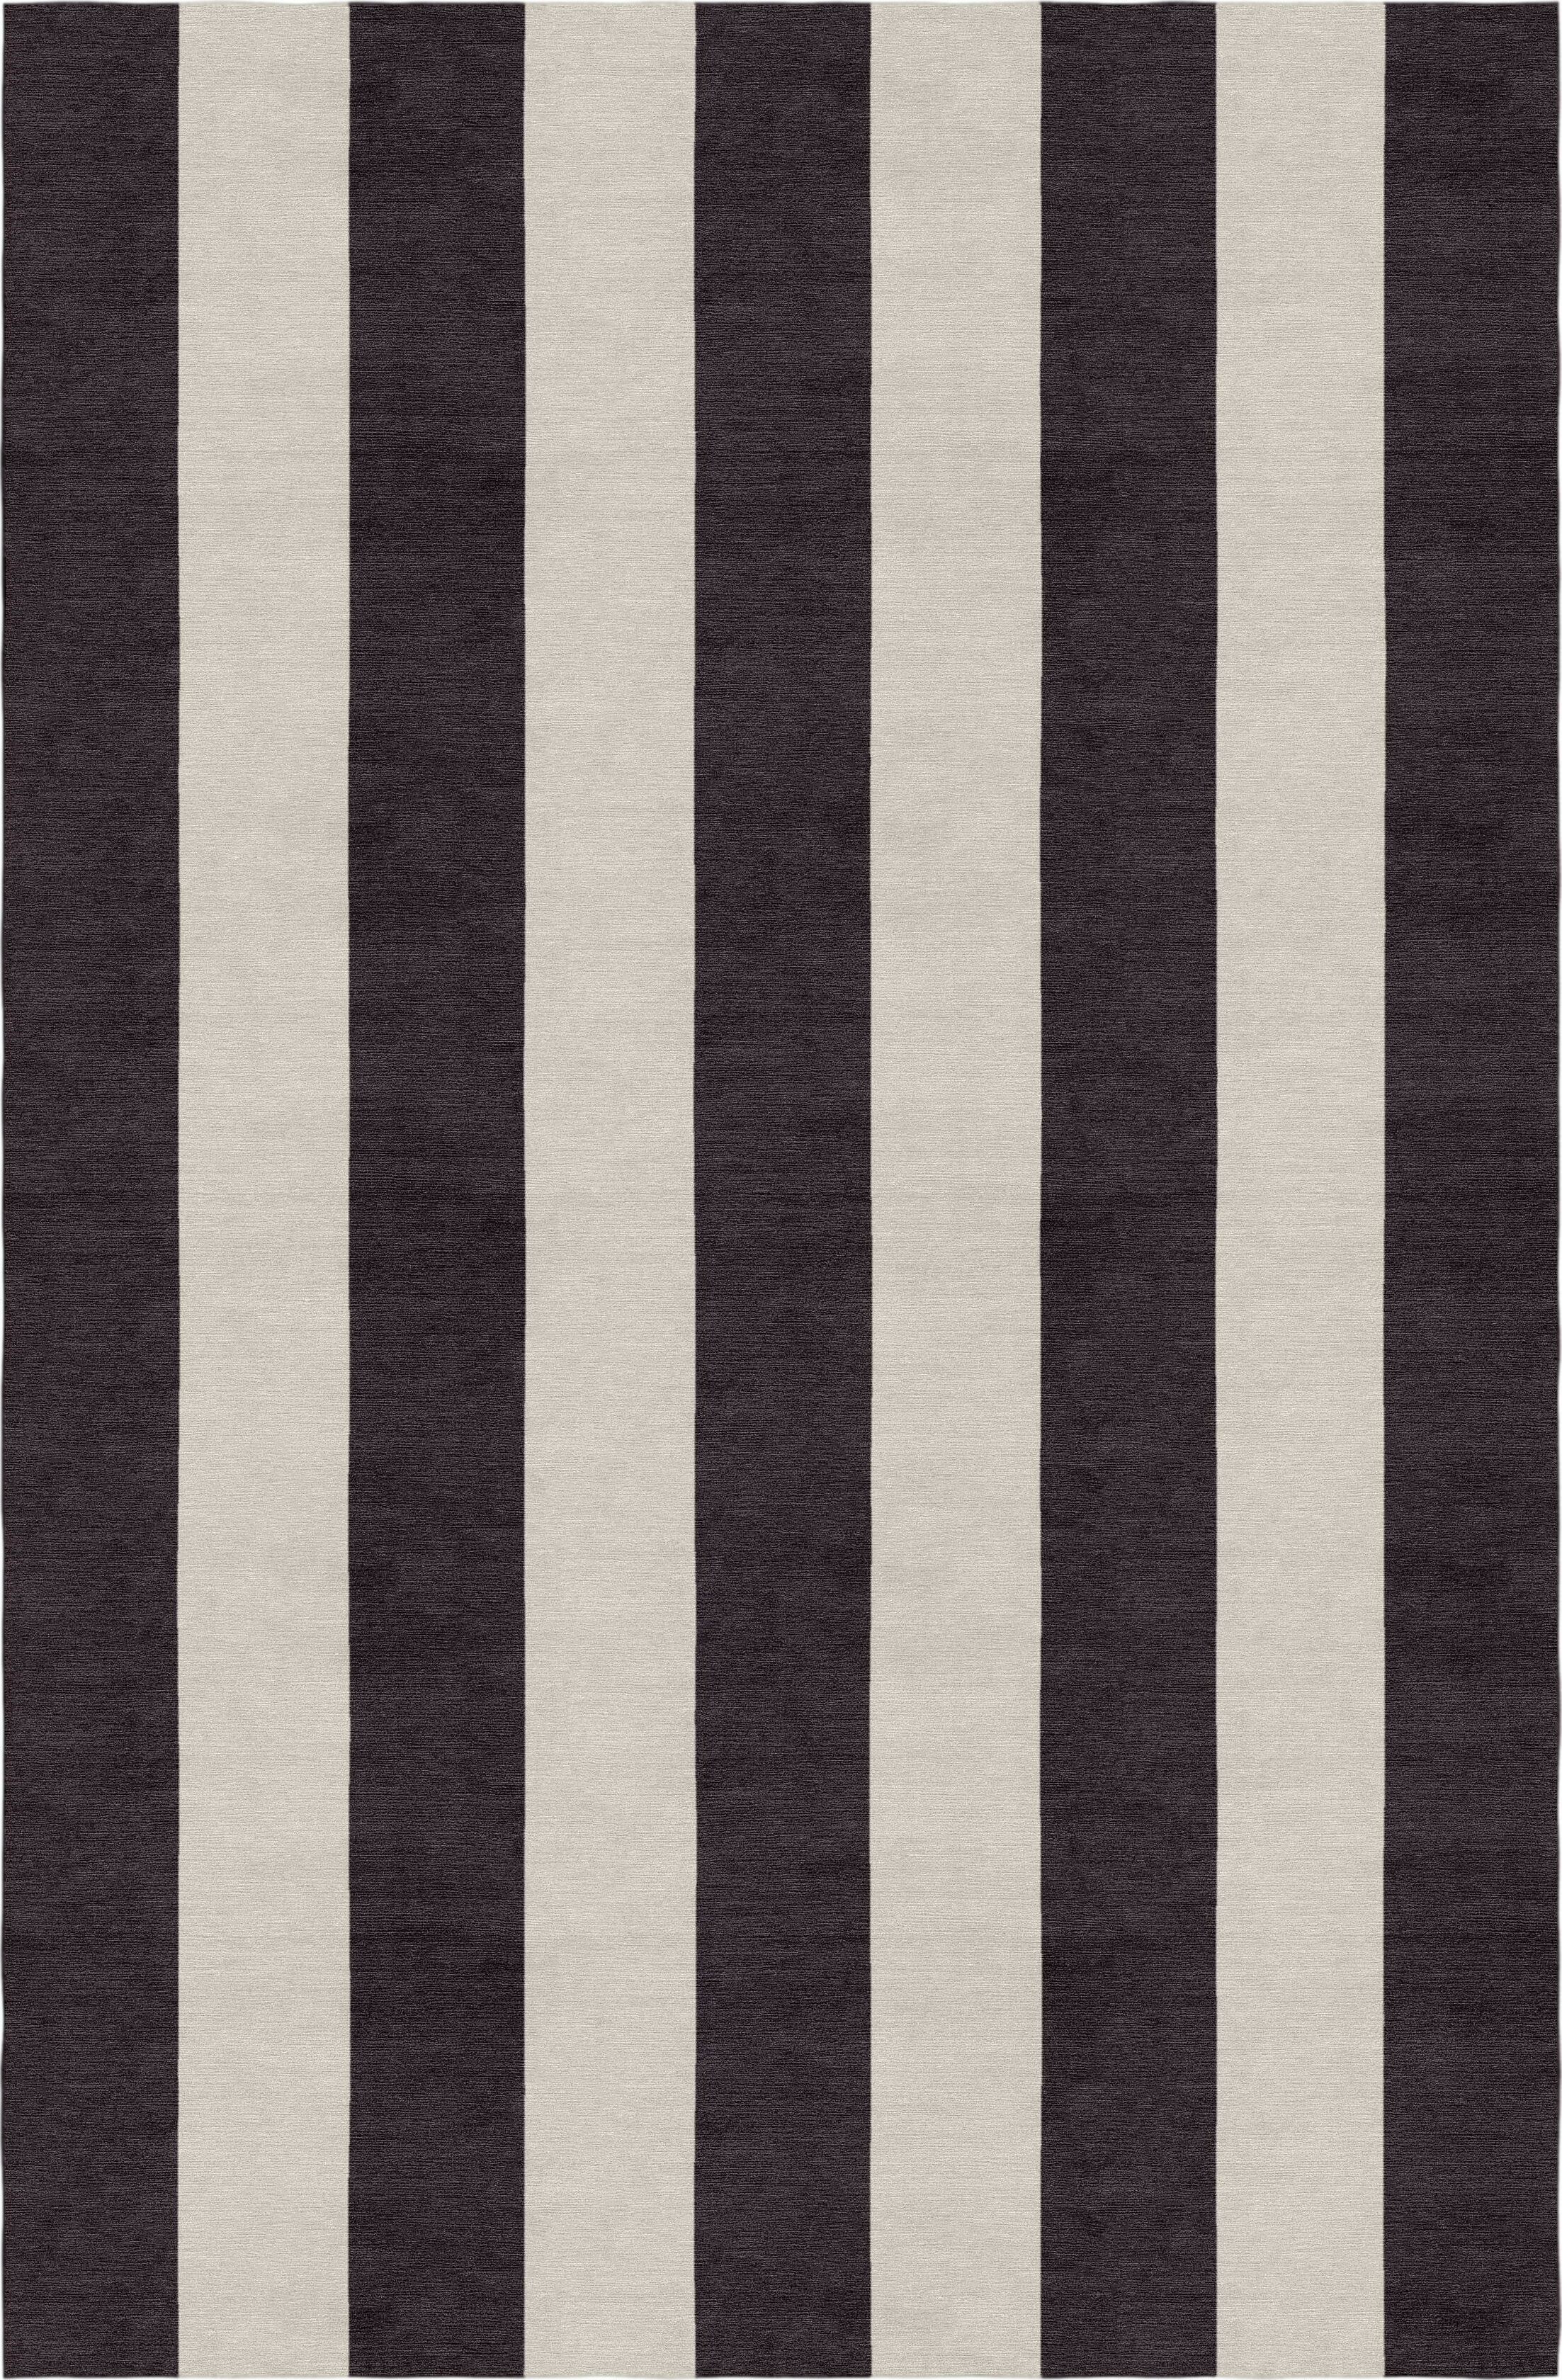 Clausen Stripe Hand-Woven Wool Silver/Charcoal Area Rug Rug Size: Rectangle 6' X 9'